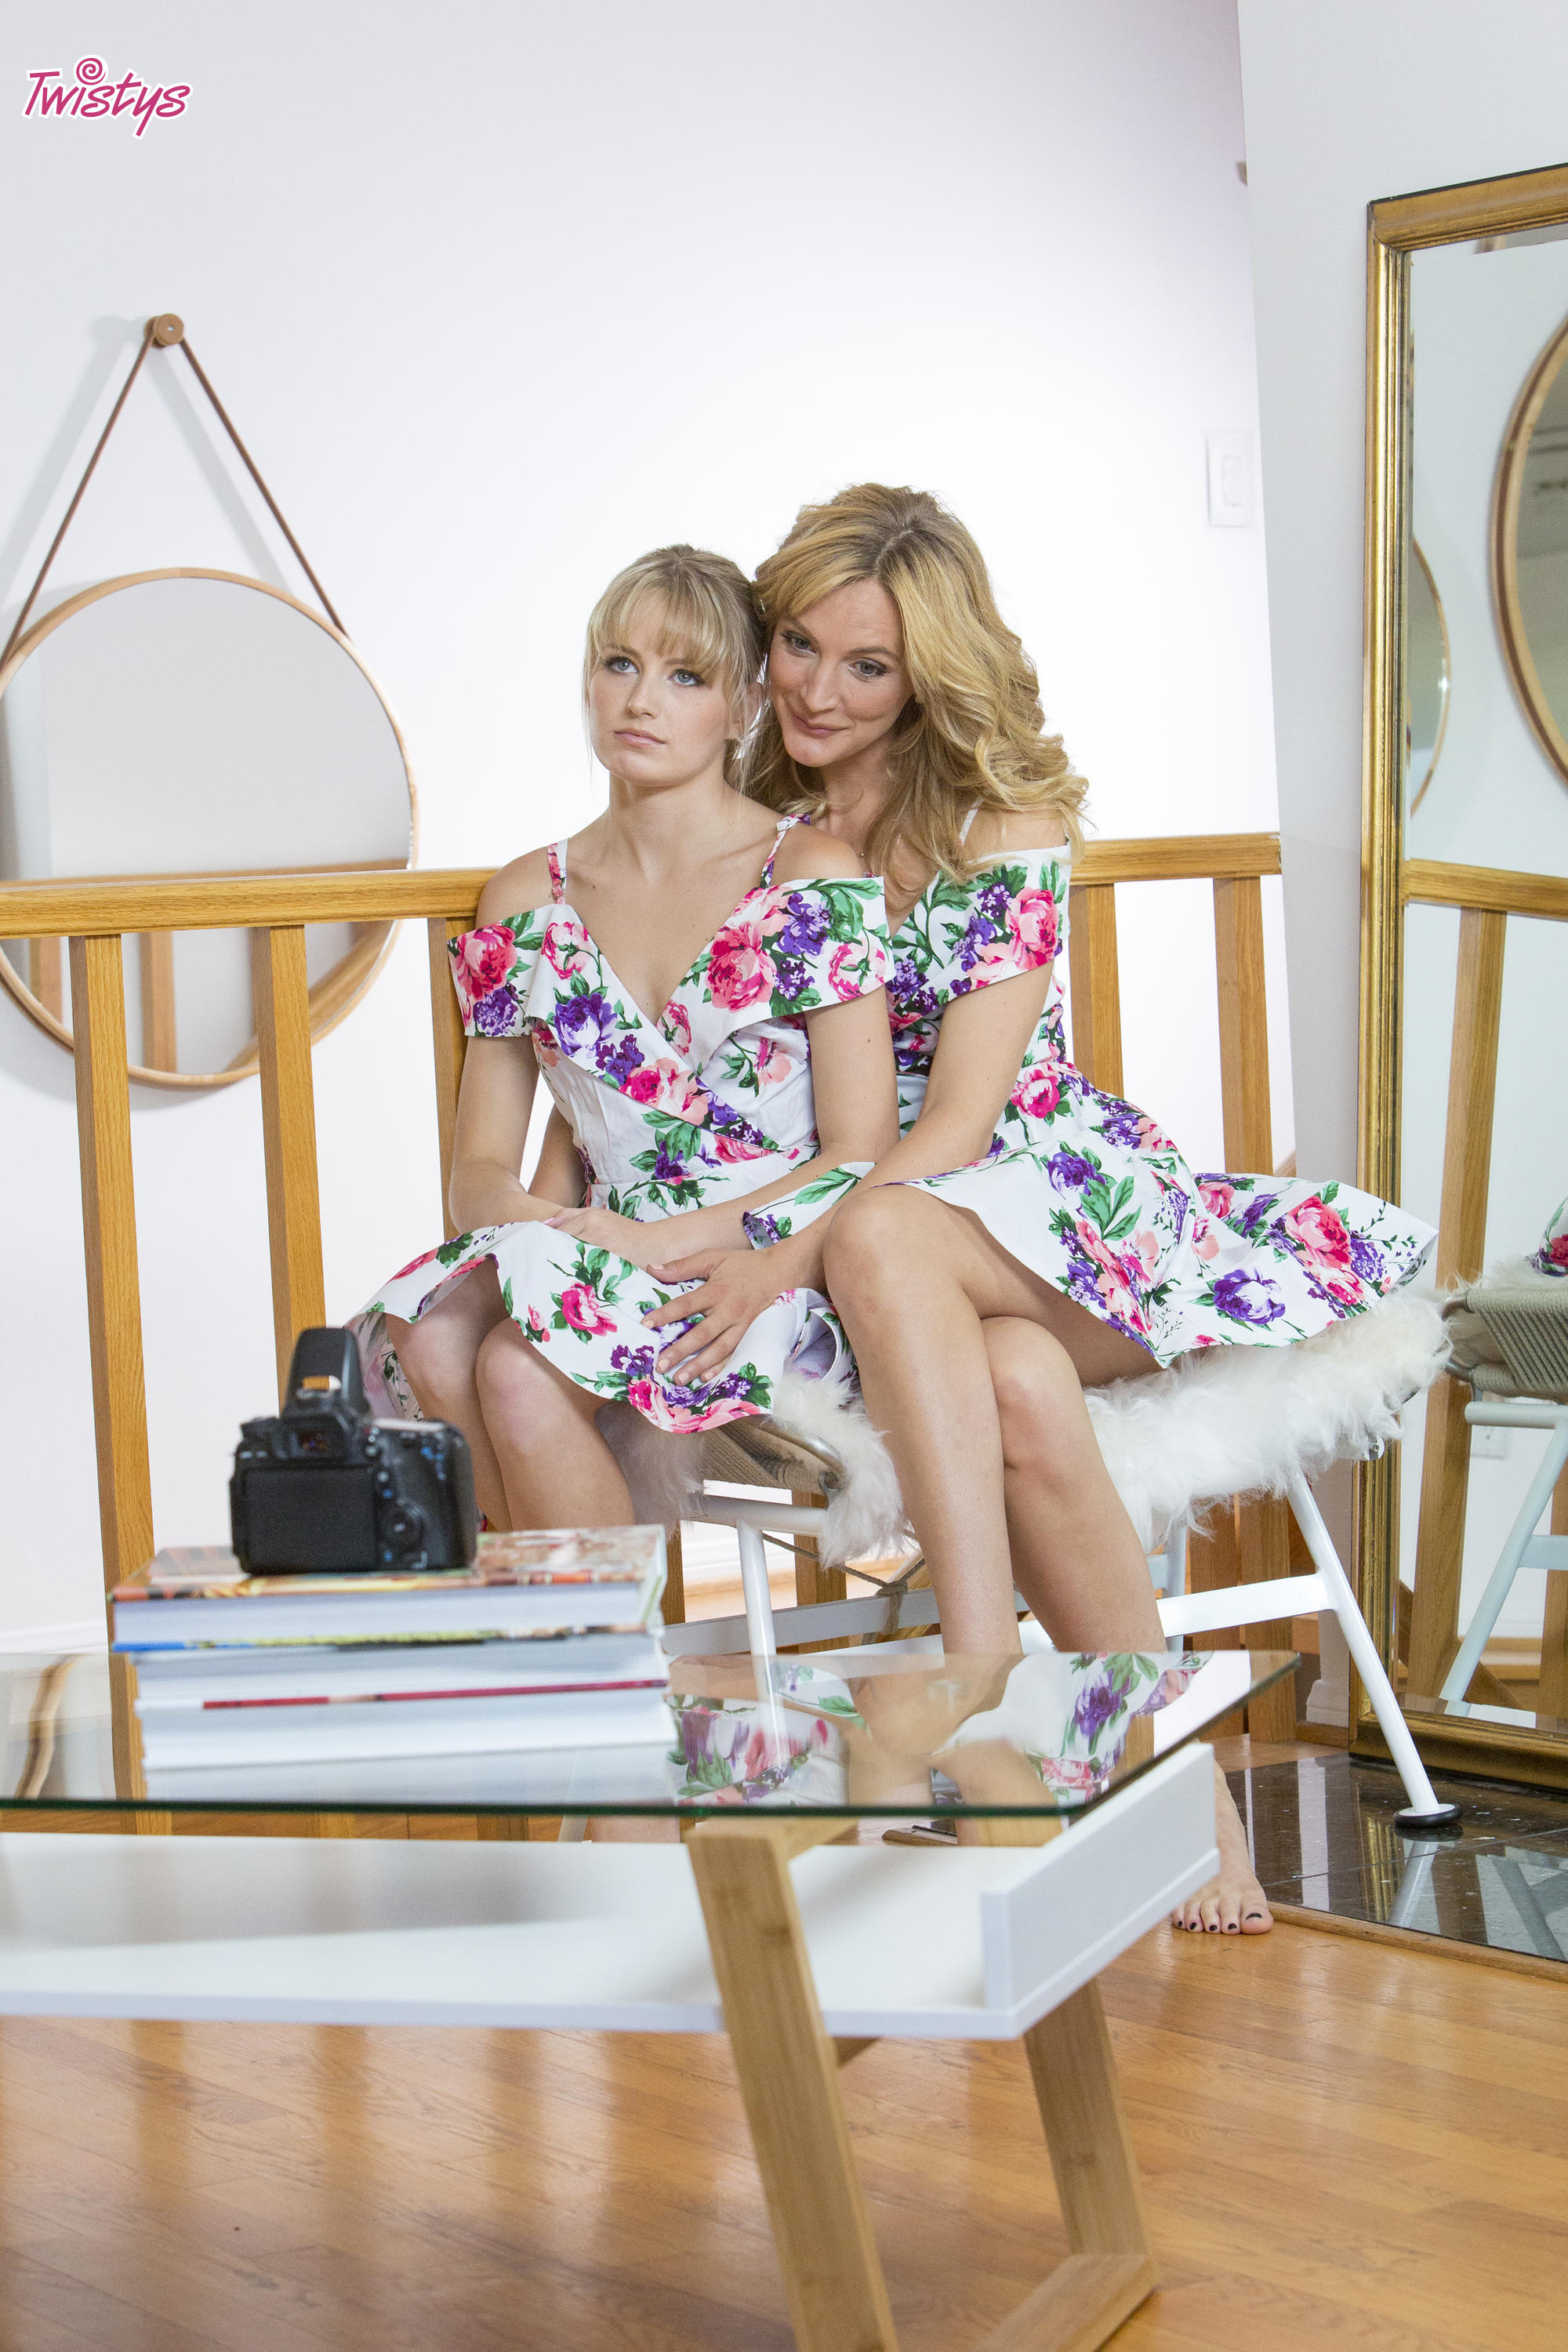 Twistys 'Like Stepmother, Like Stepdaughter' starring Mona Wales (Photo 30)